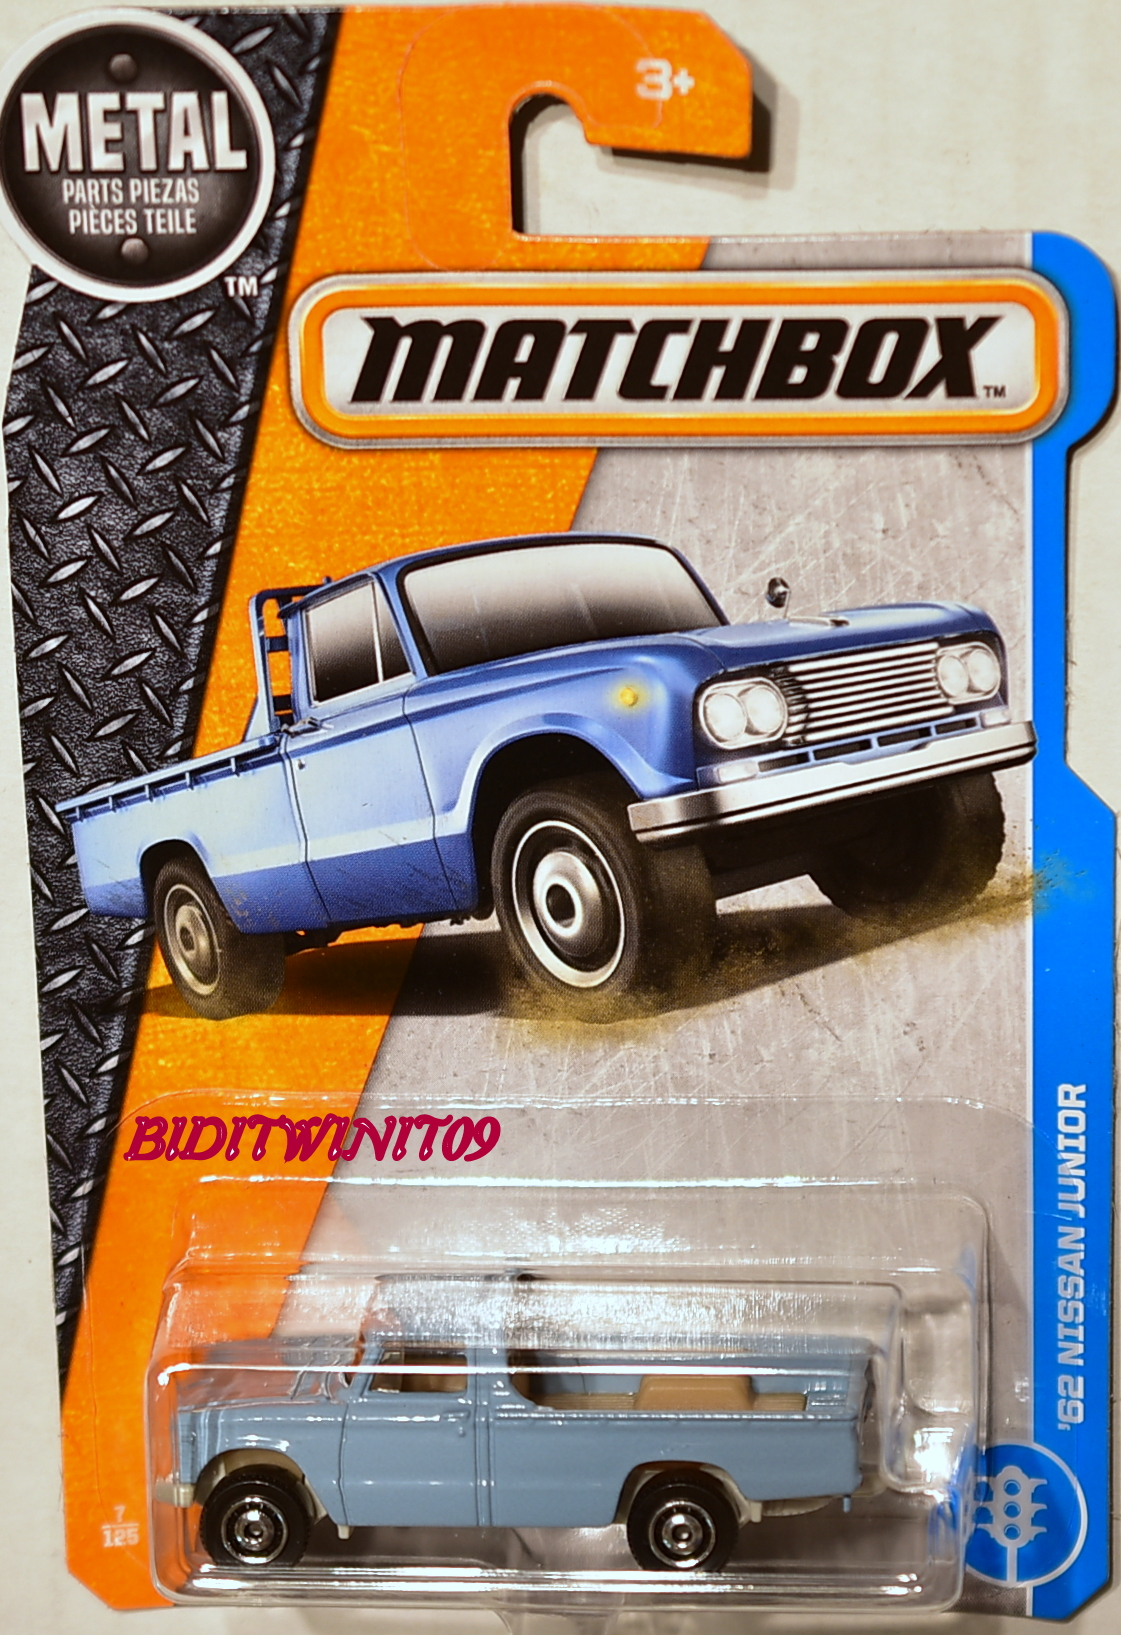 MATCHBOX 2017 METAL PARTS PIEZAS '62 NISSAN JUNIOR